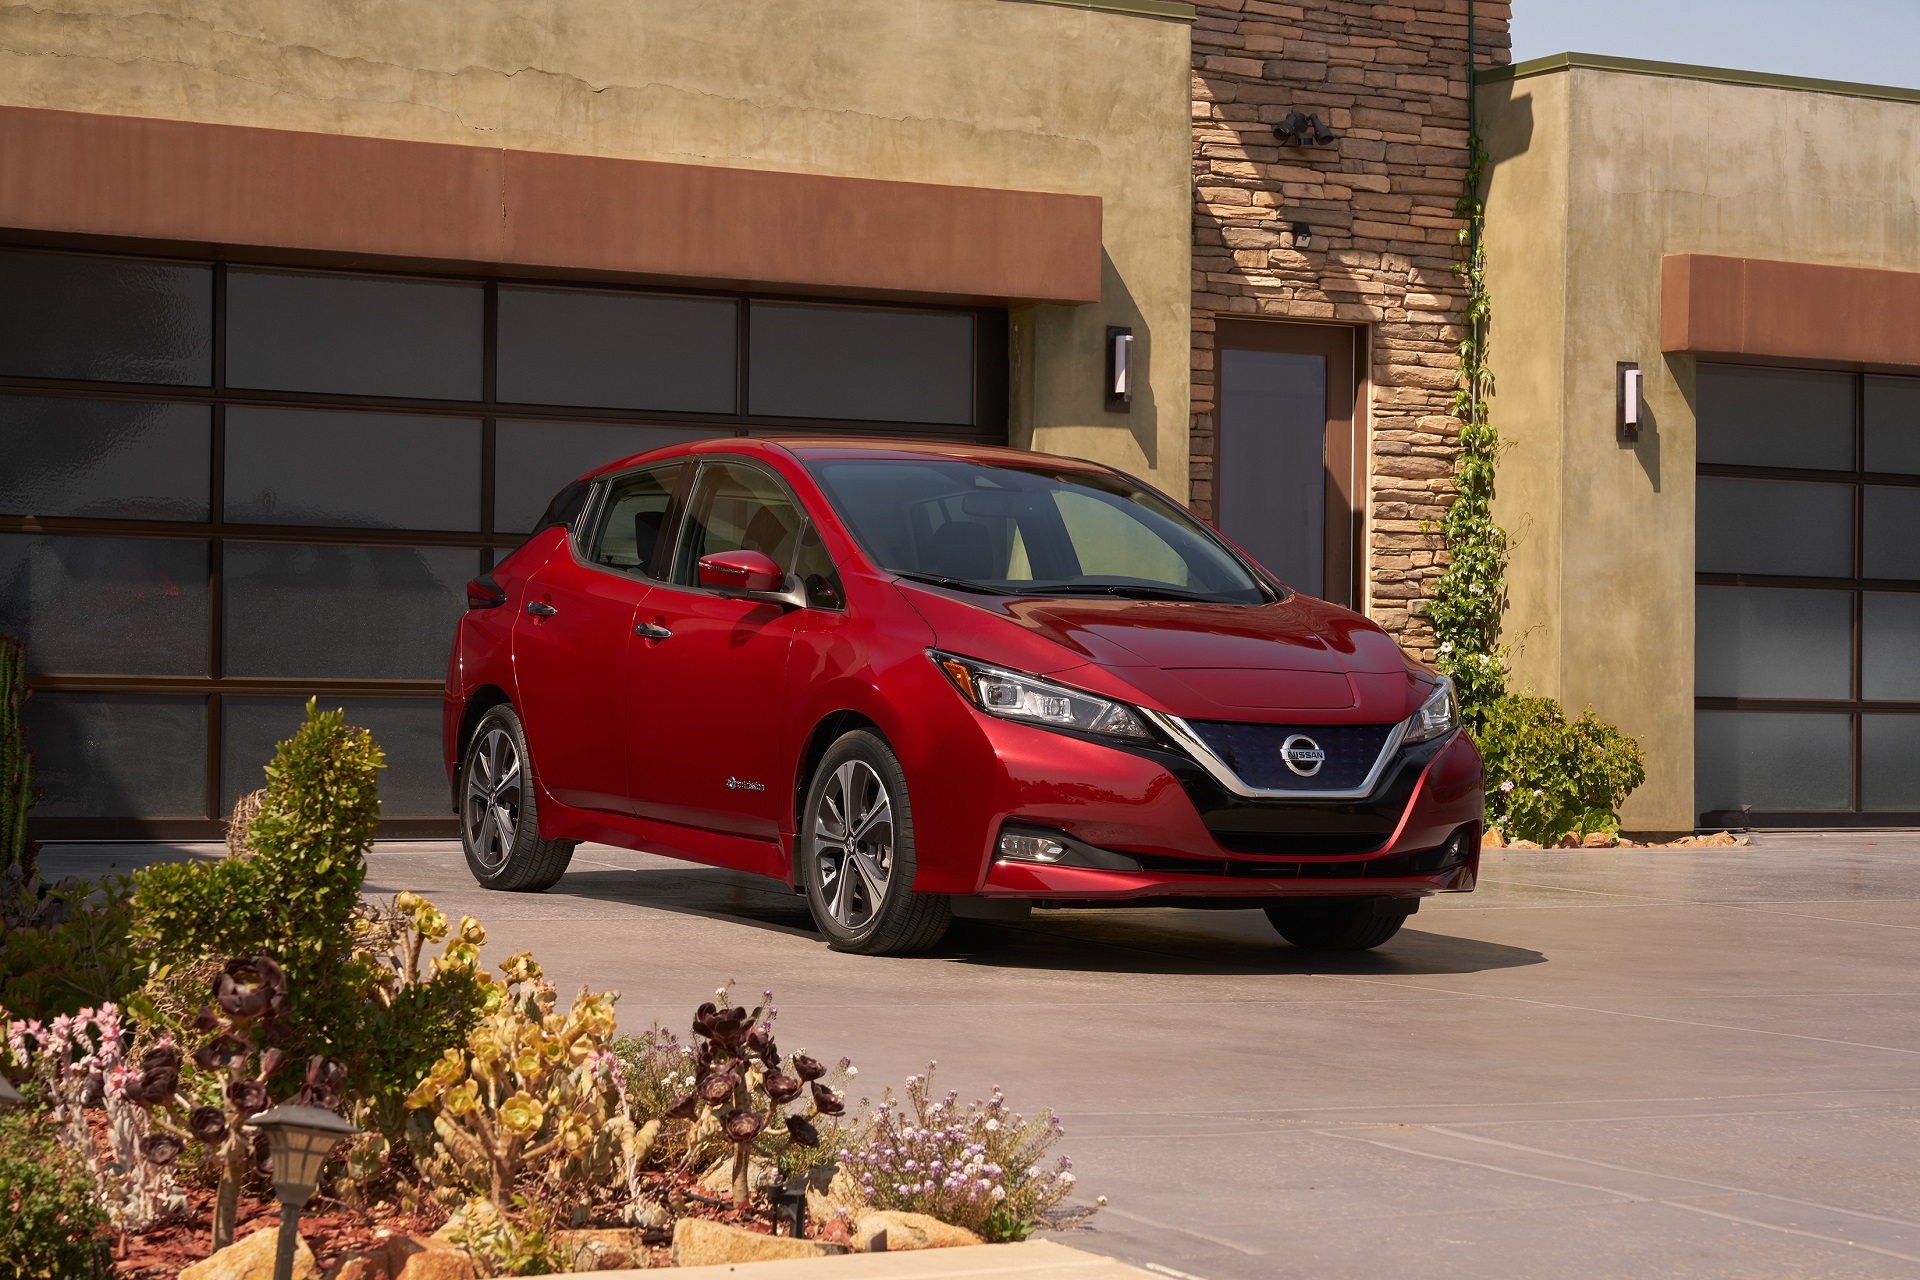 2018 Nissan Leaf vs Chevrolet Bolt EV: new electric cars compared